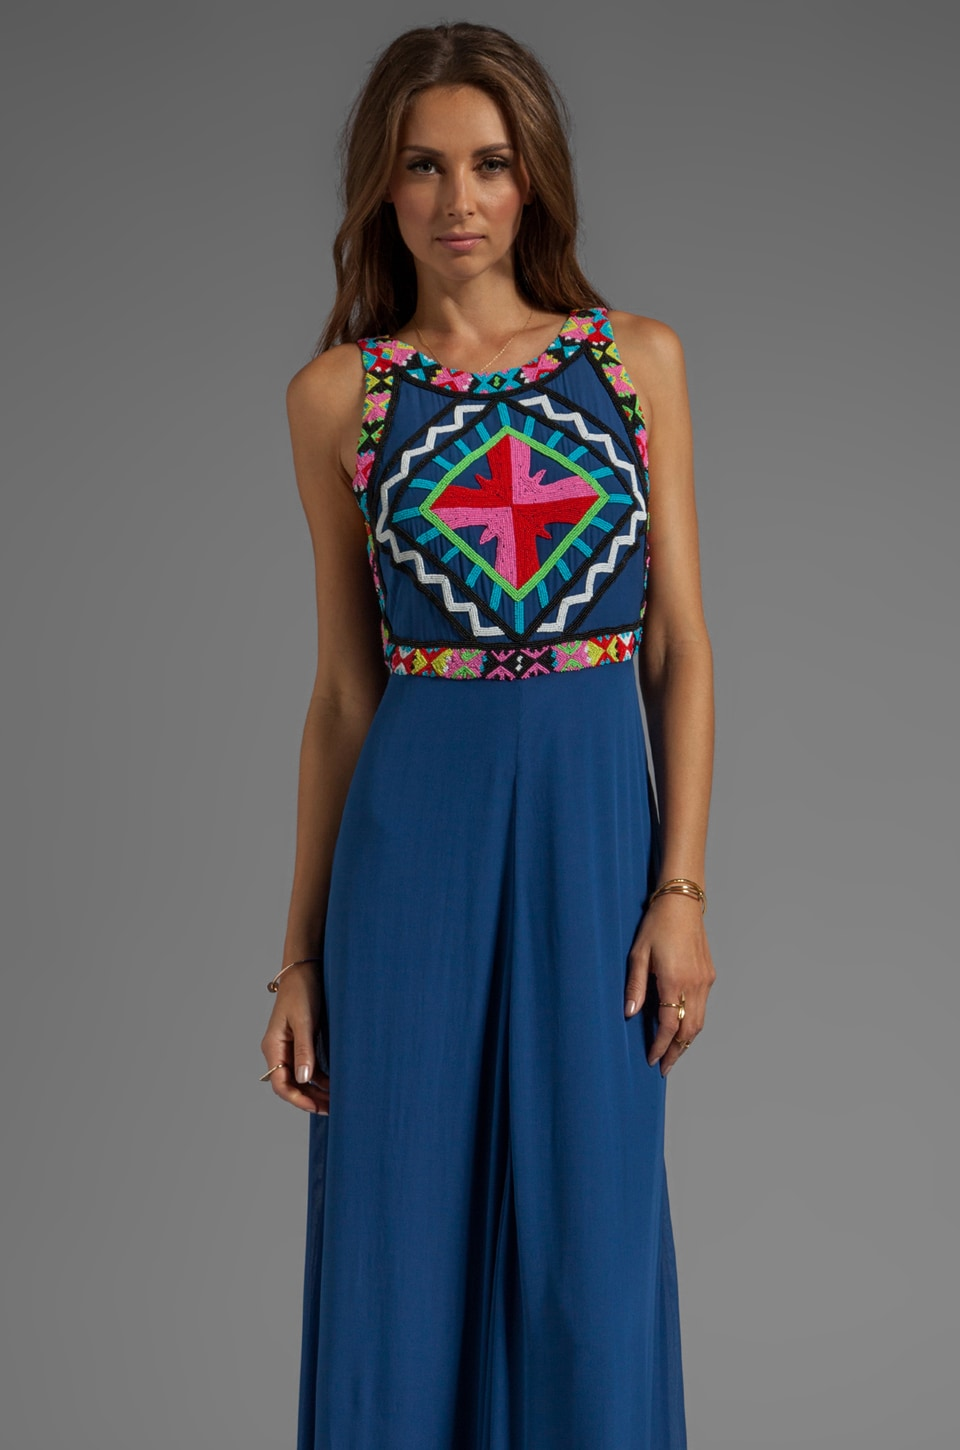 Mara Hoffman Beaded Gown in Denim